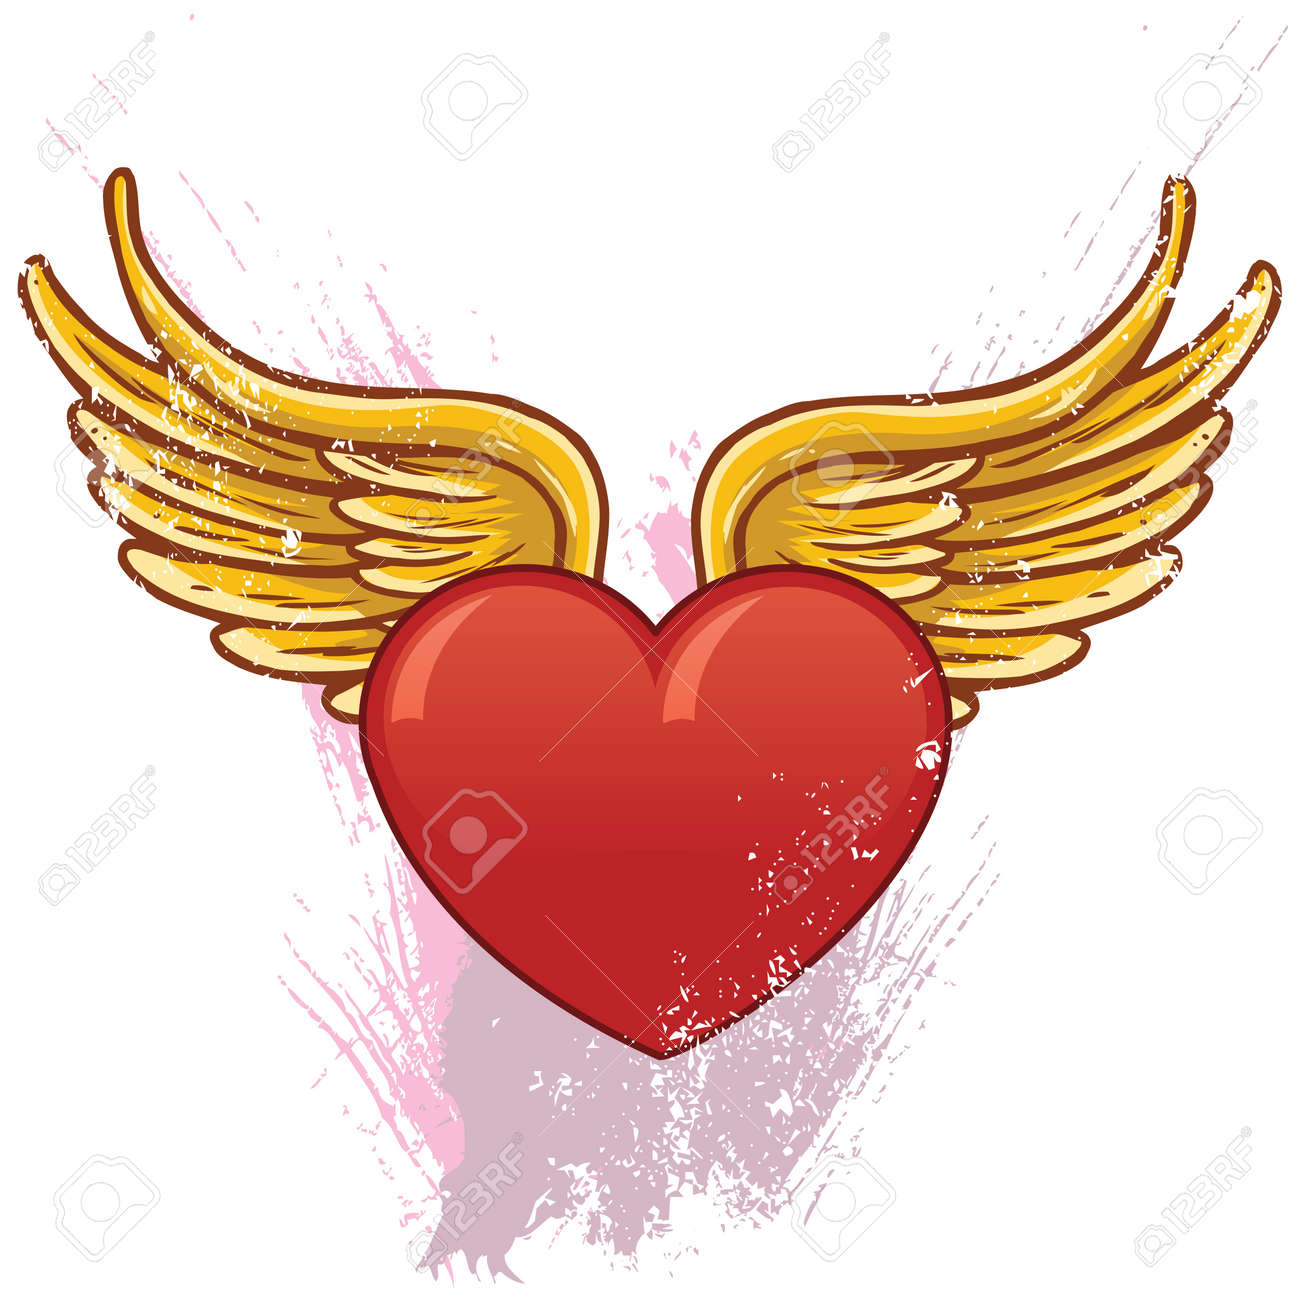 Heart With Wings Vector Illustration. All Parts Are Complete ...